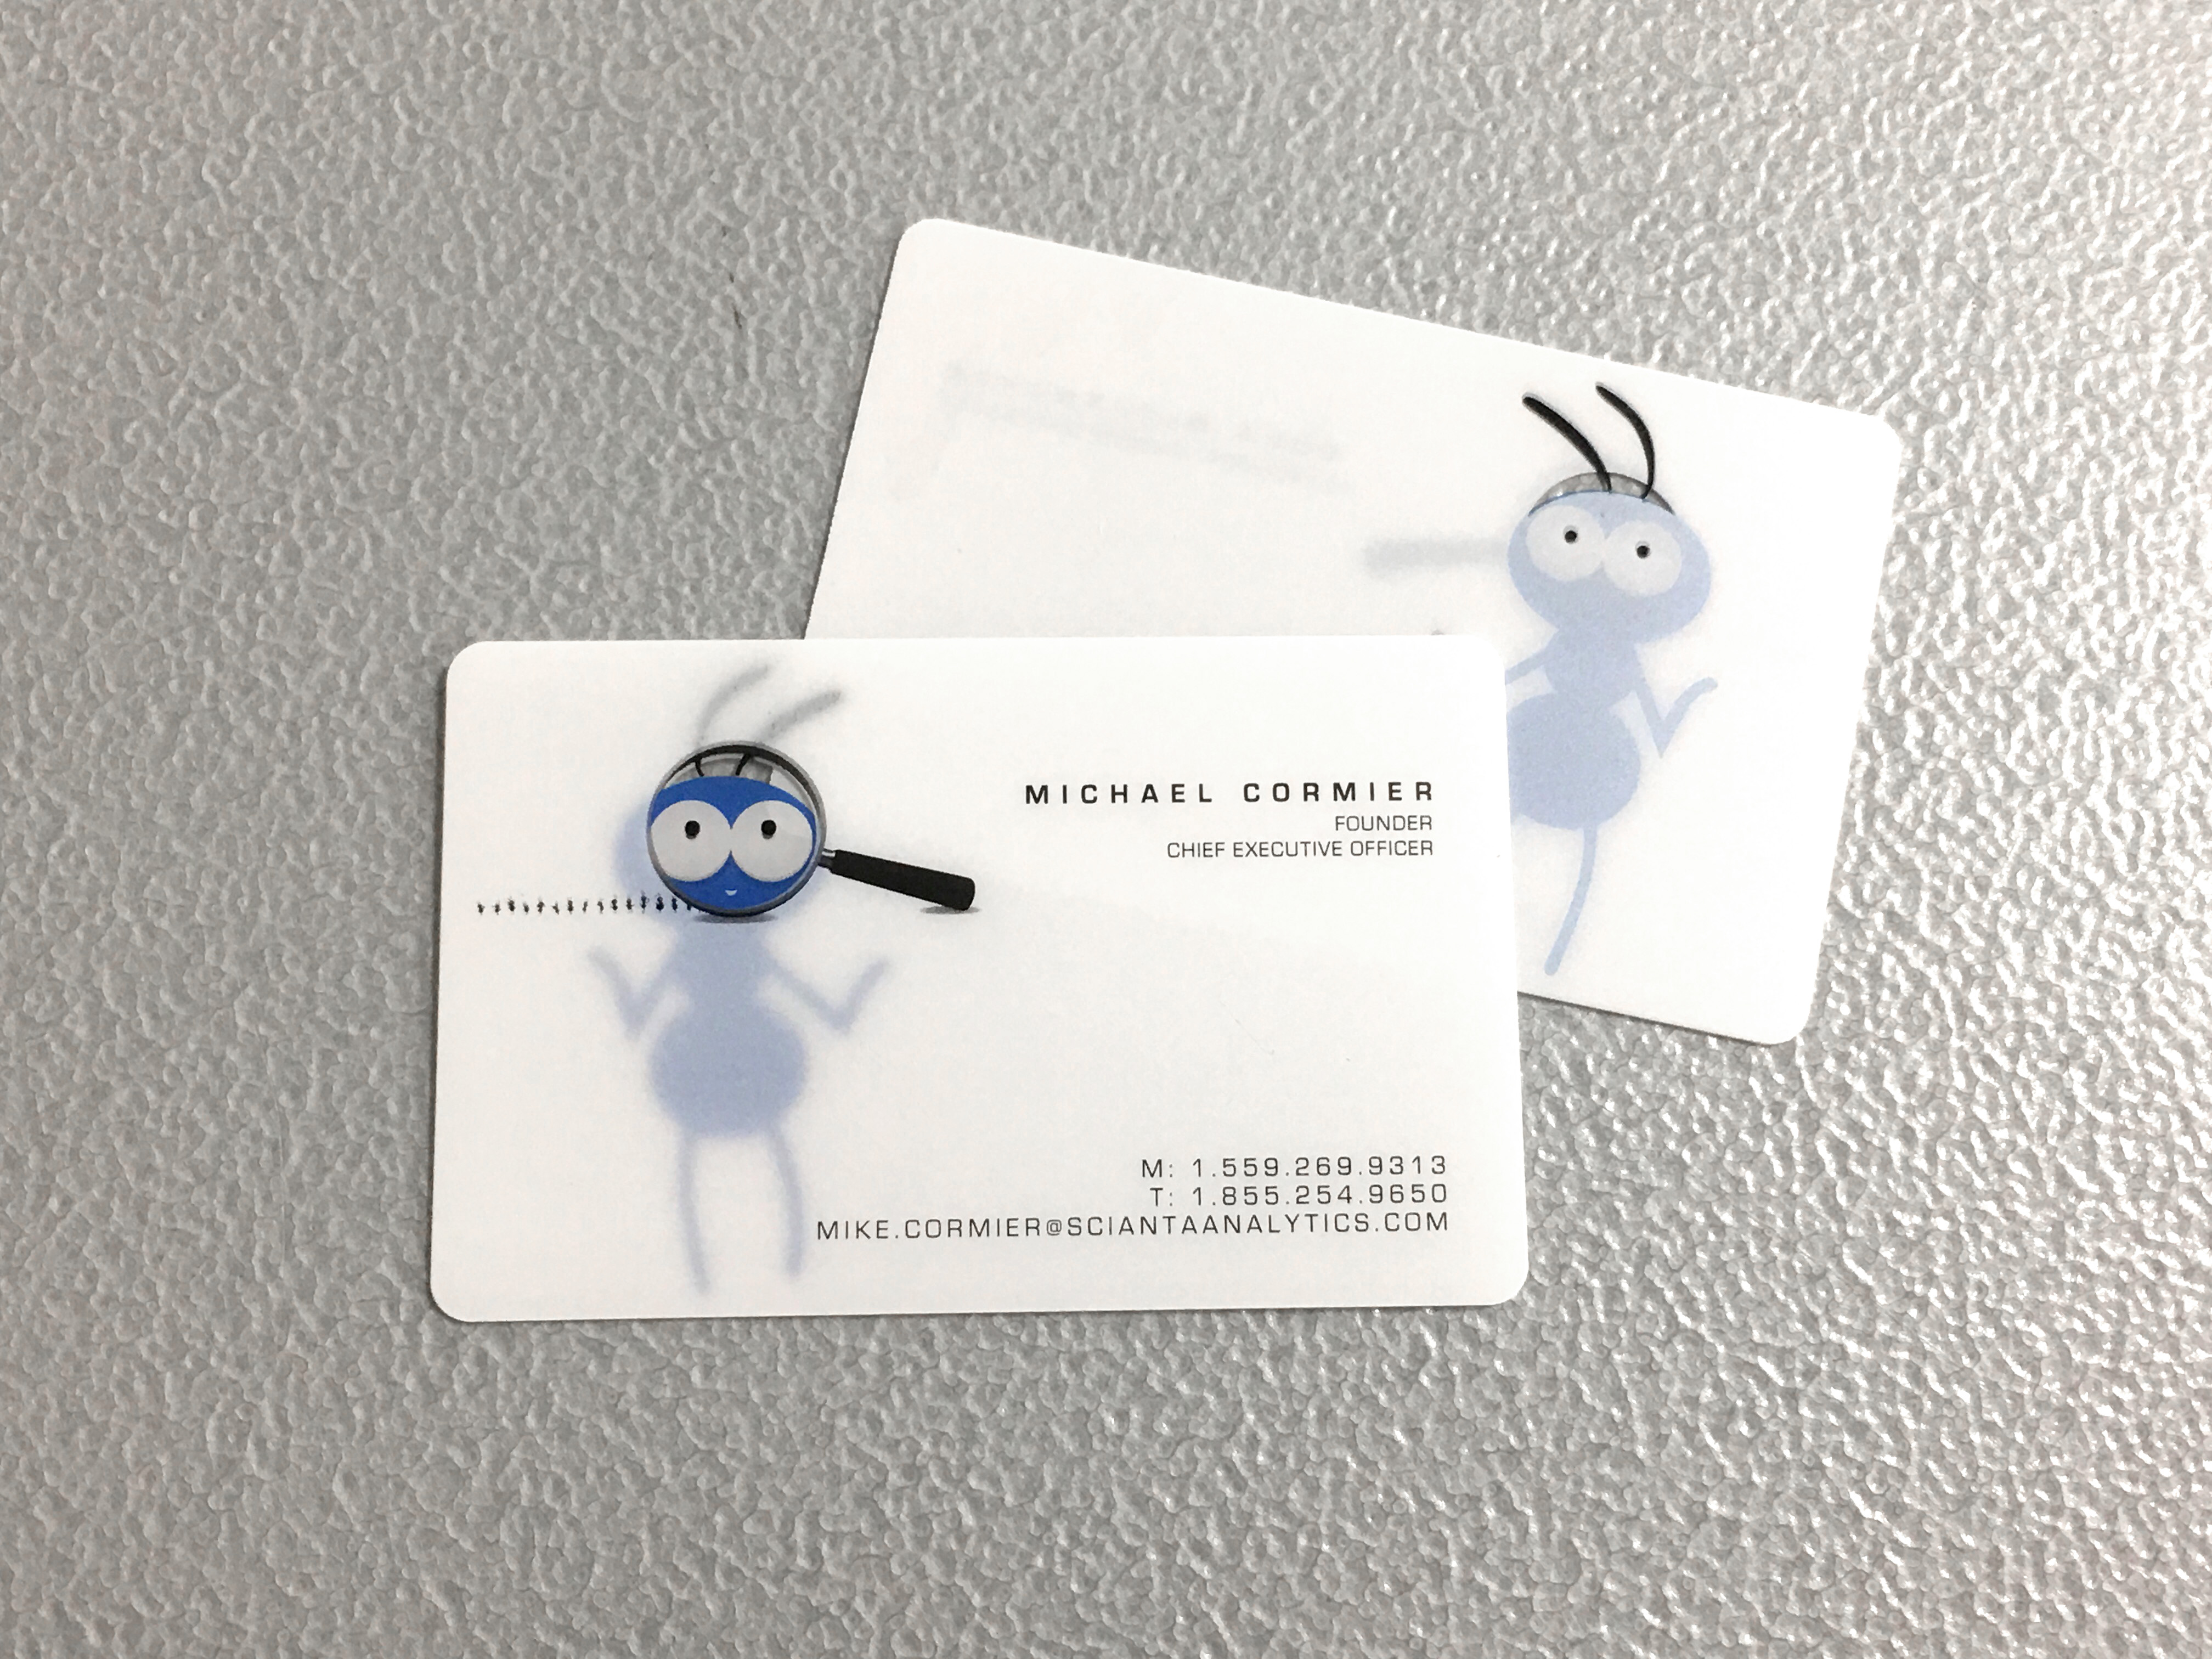 Clear Business Cards Sample Request | Plastic Printers, Inc.